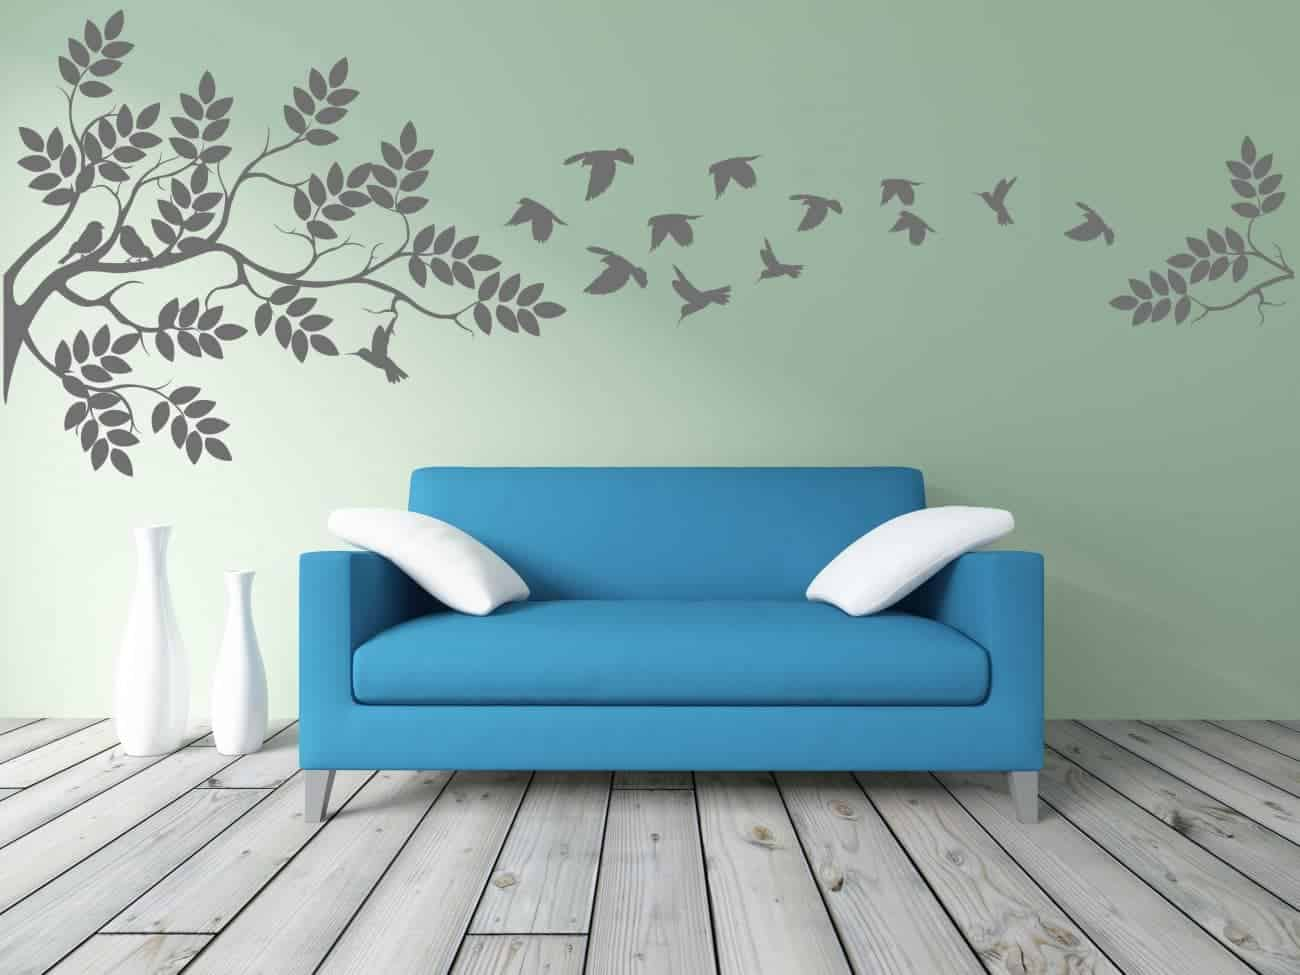 Branches flying birds wall decal sticker